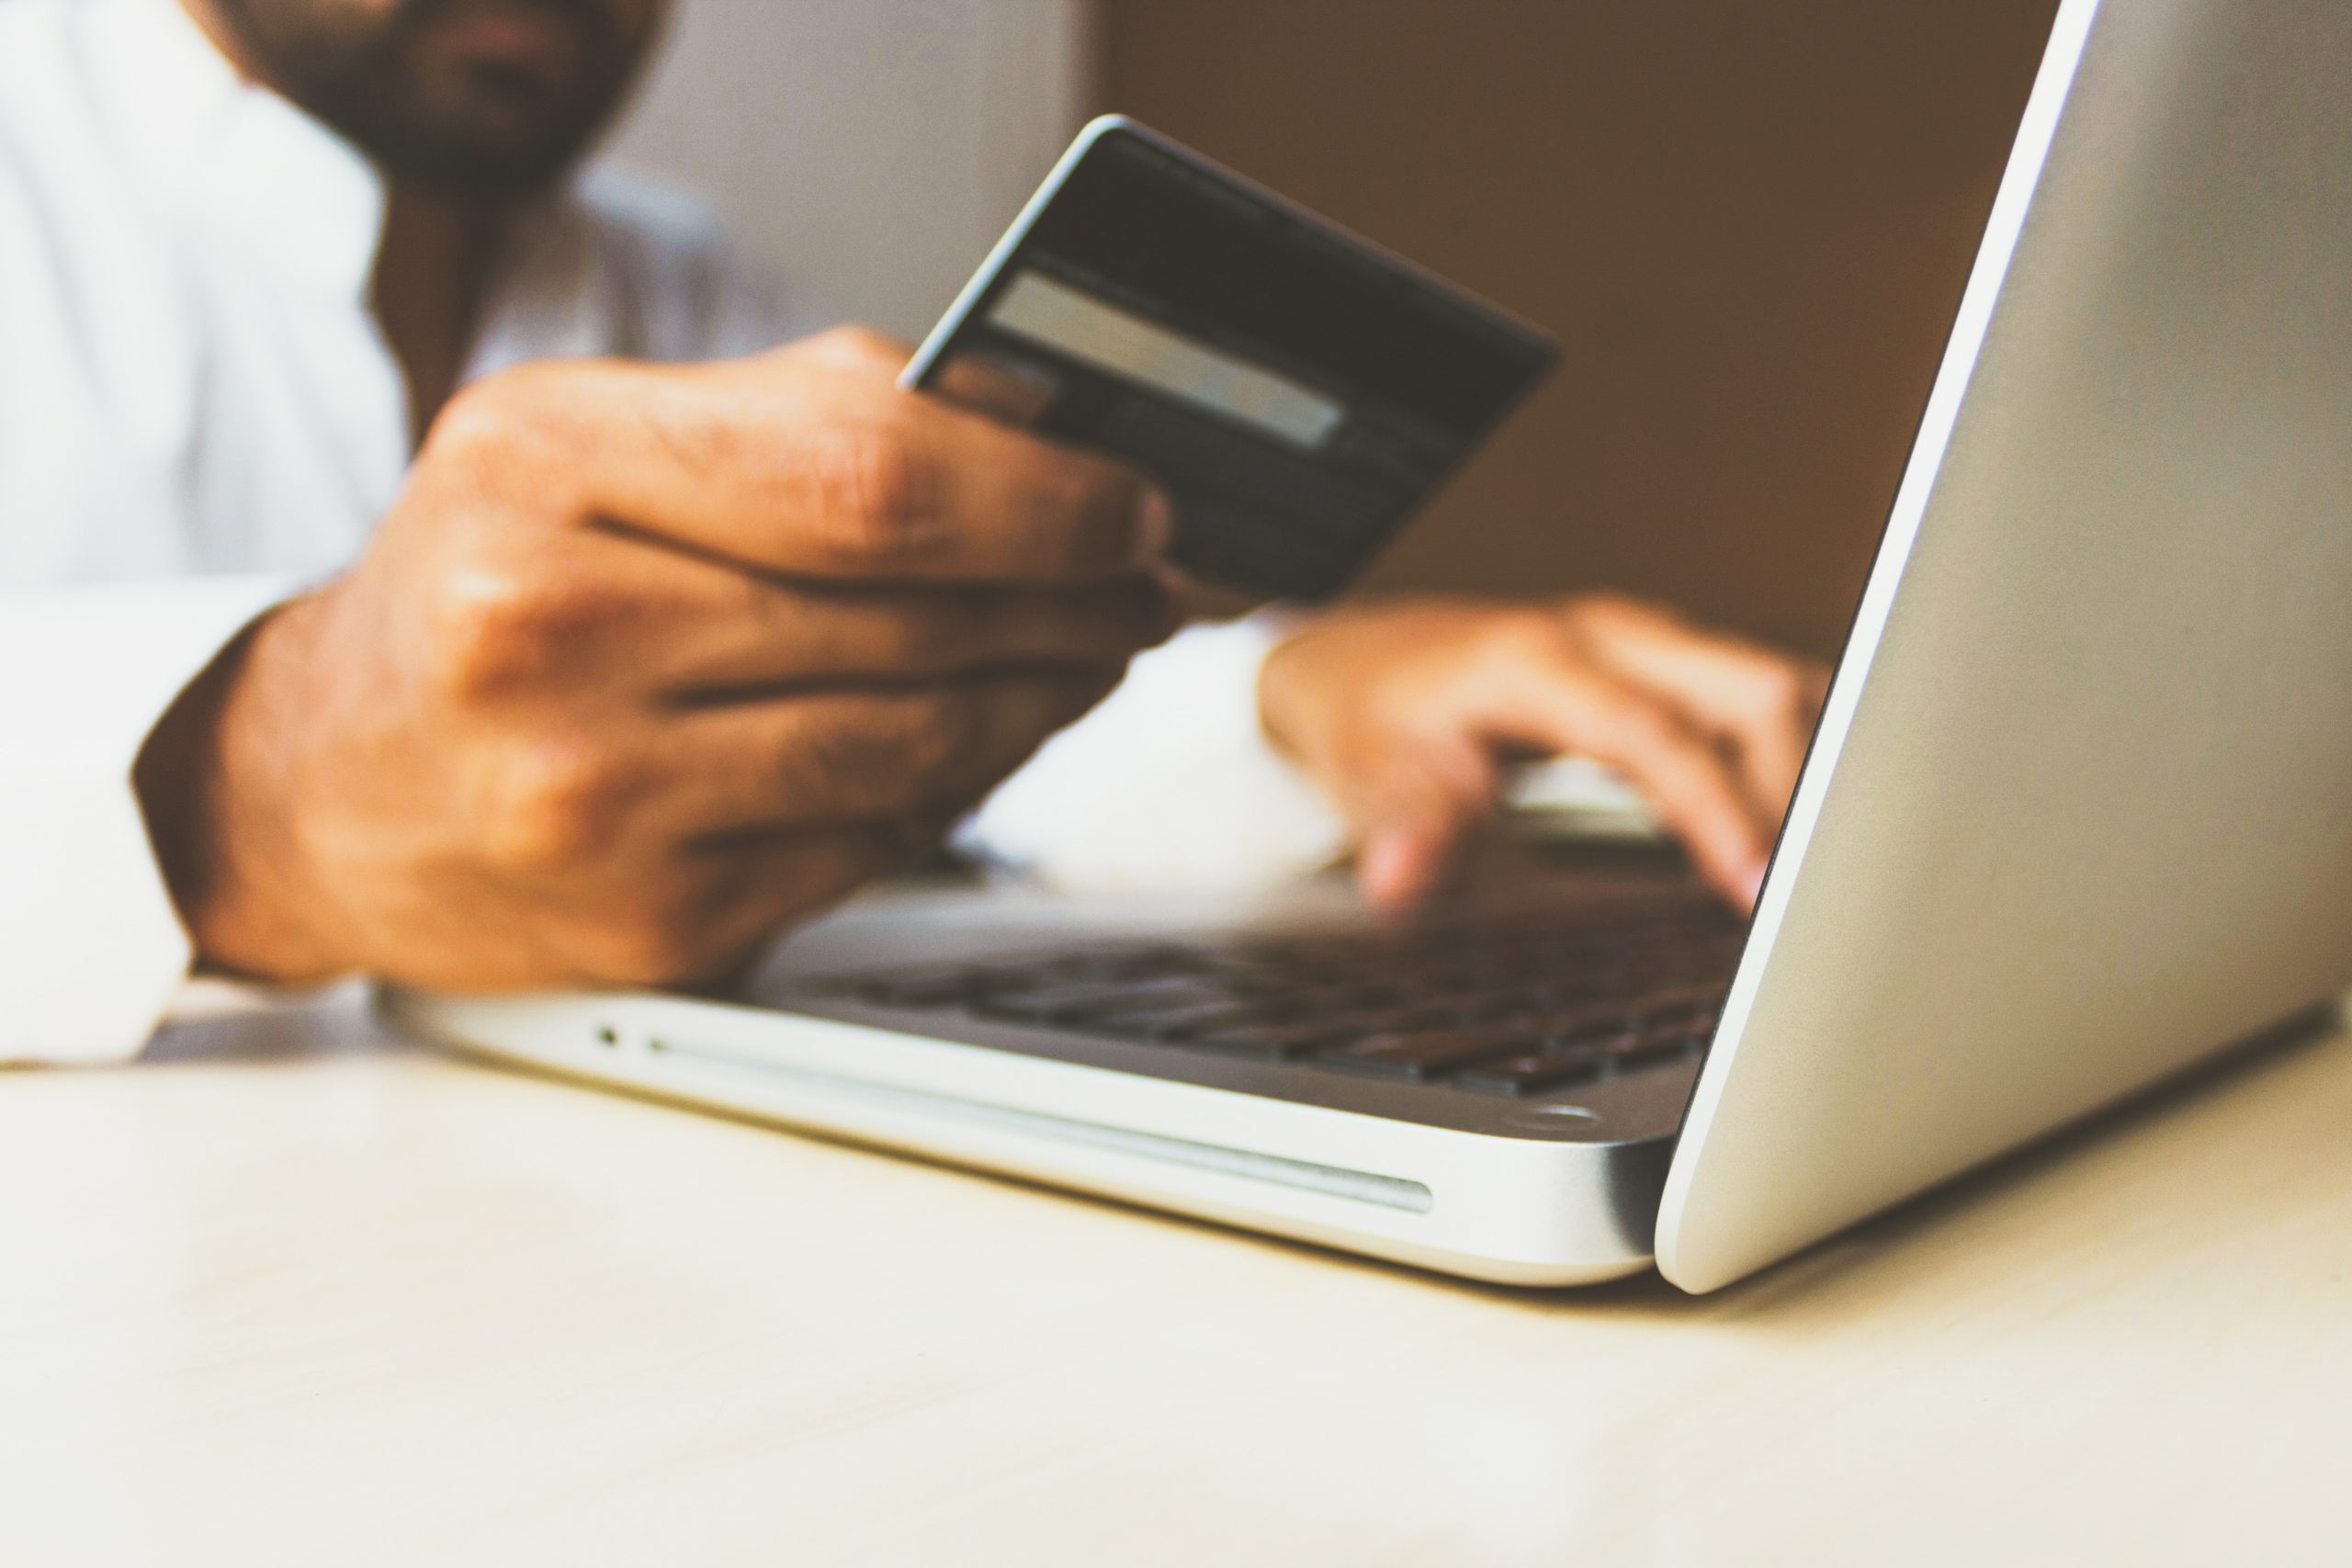 Man in front of a laptop holding up a credit card